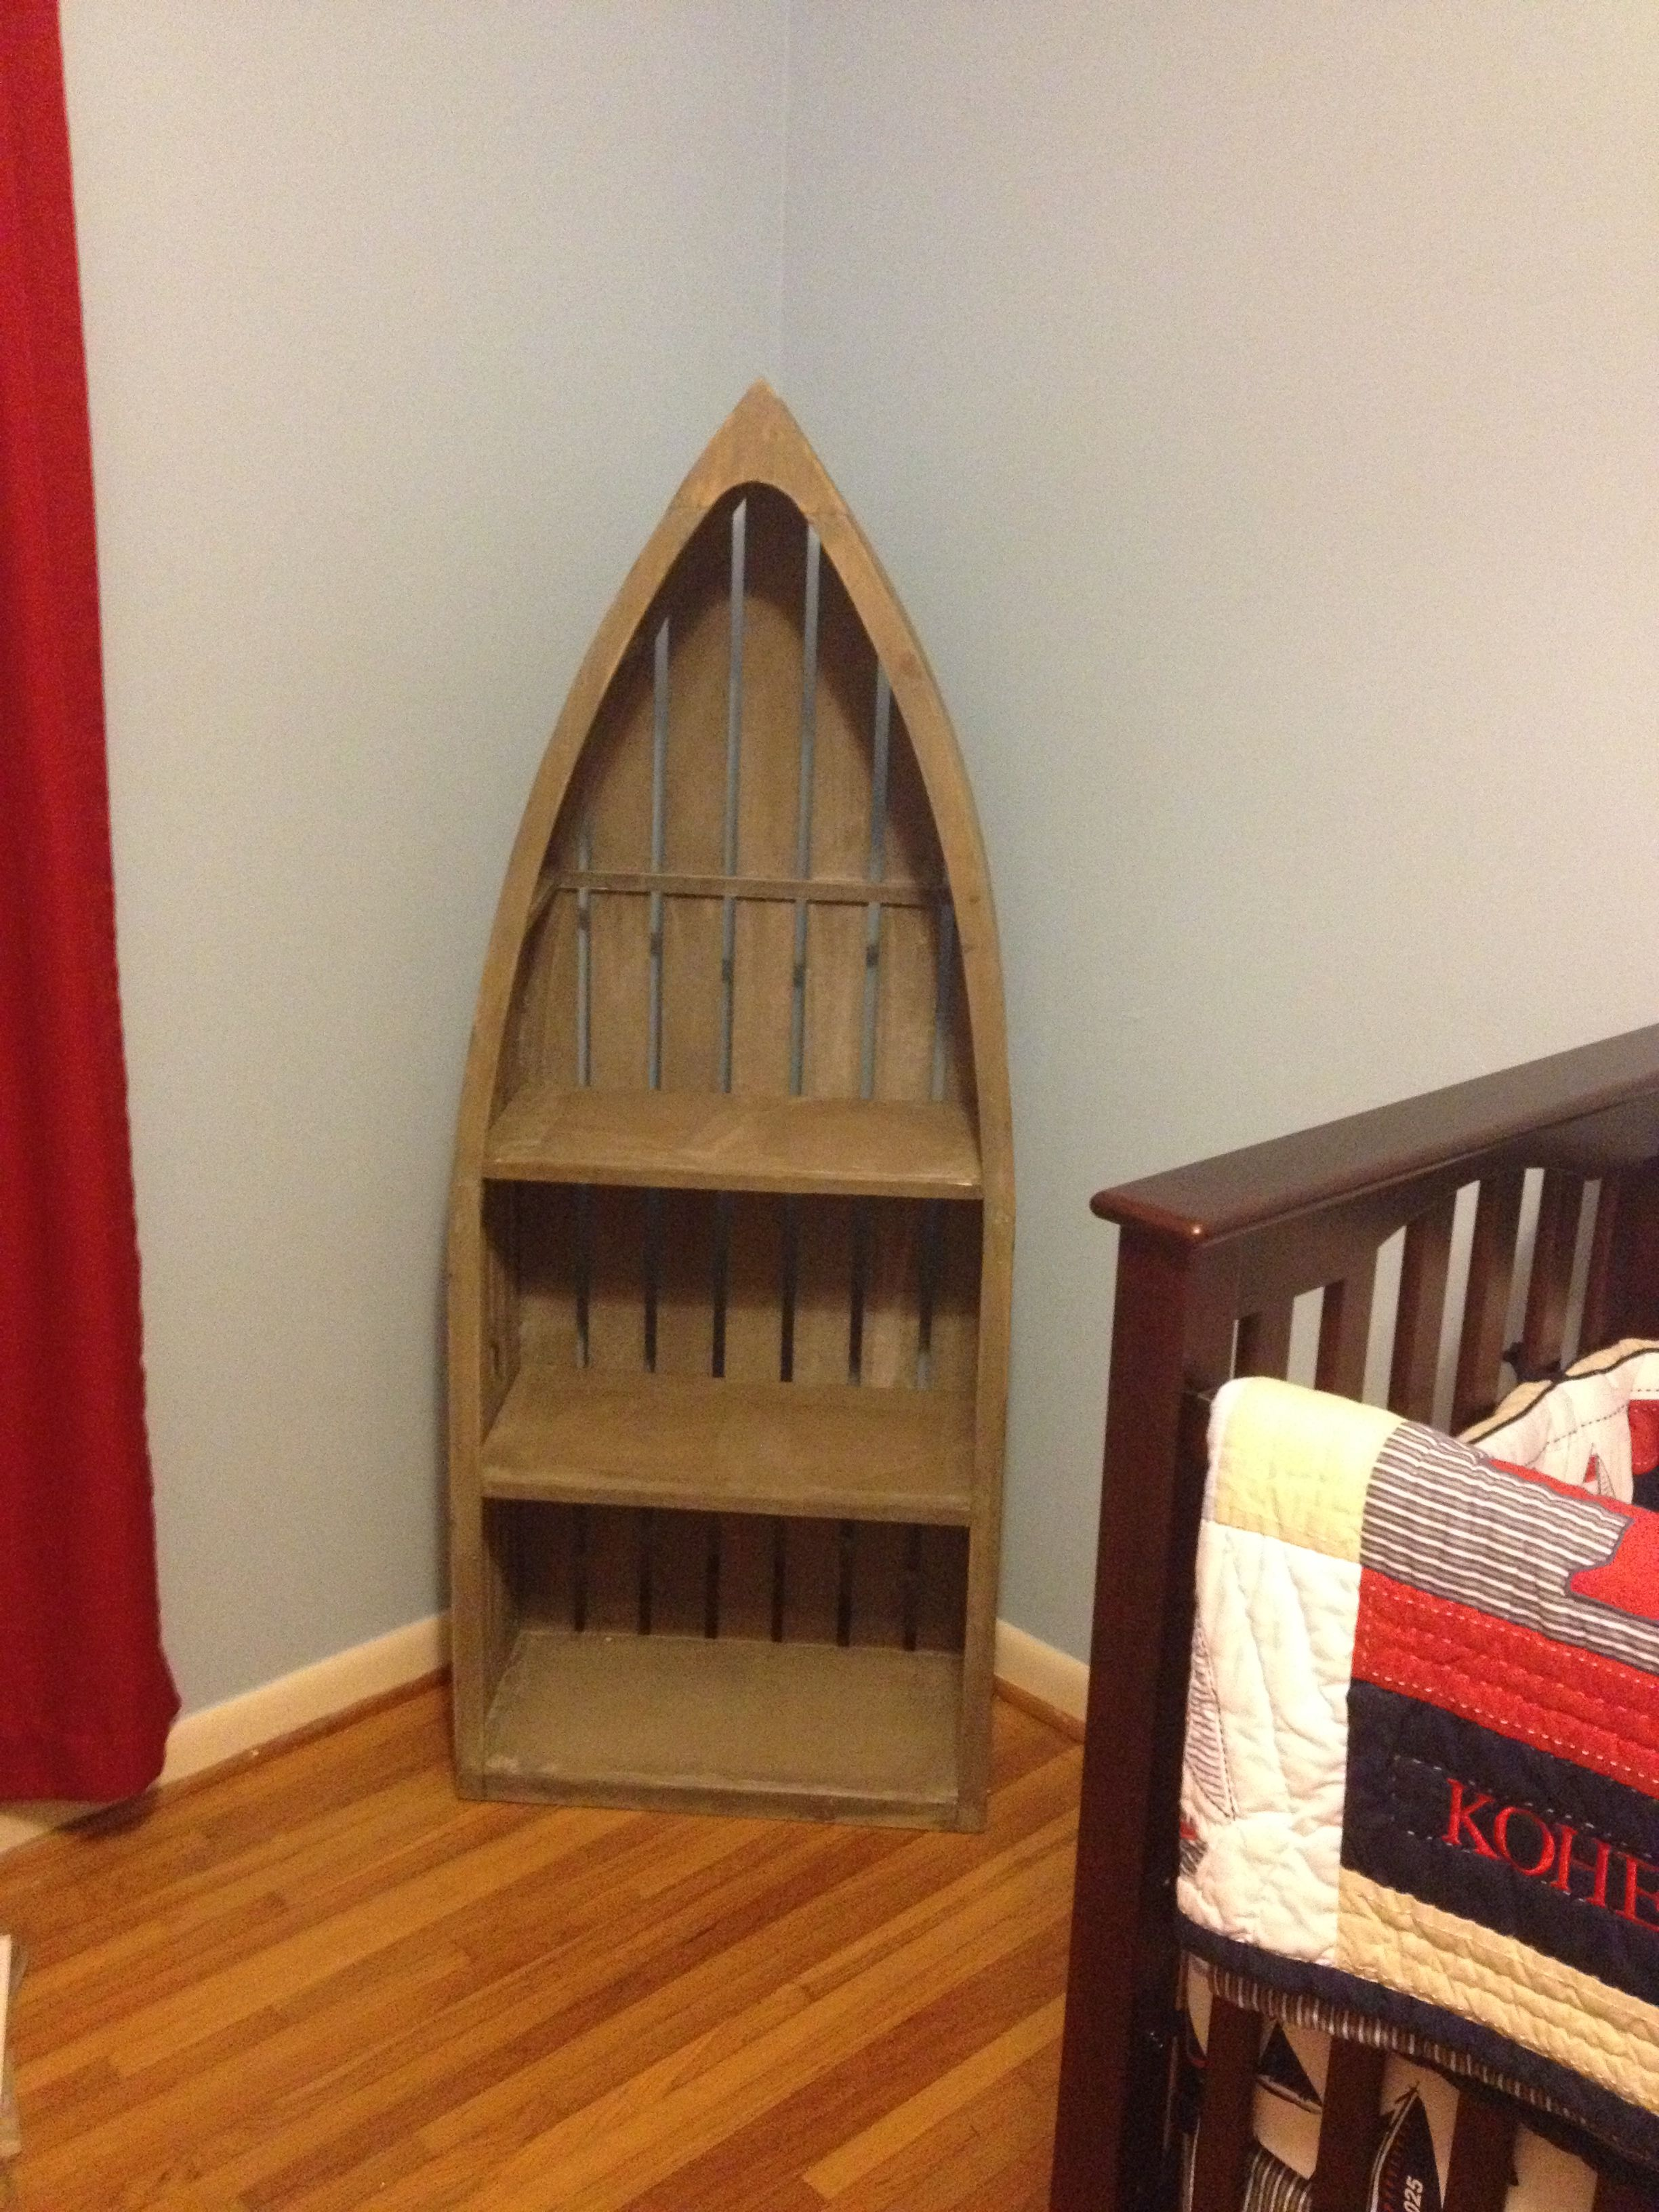 Boat Shelf From Hobby Lobby Boy Room Boat Shelf